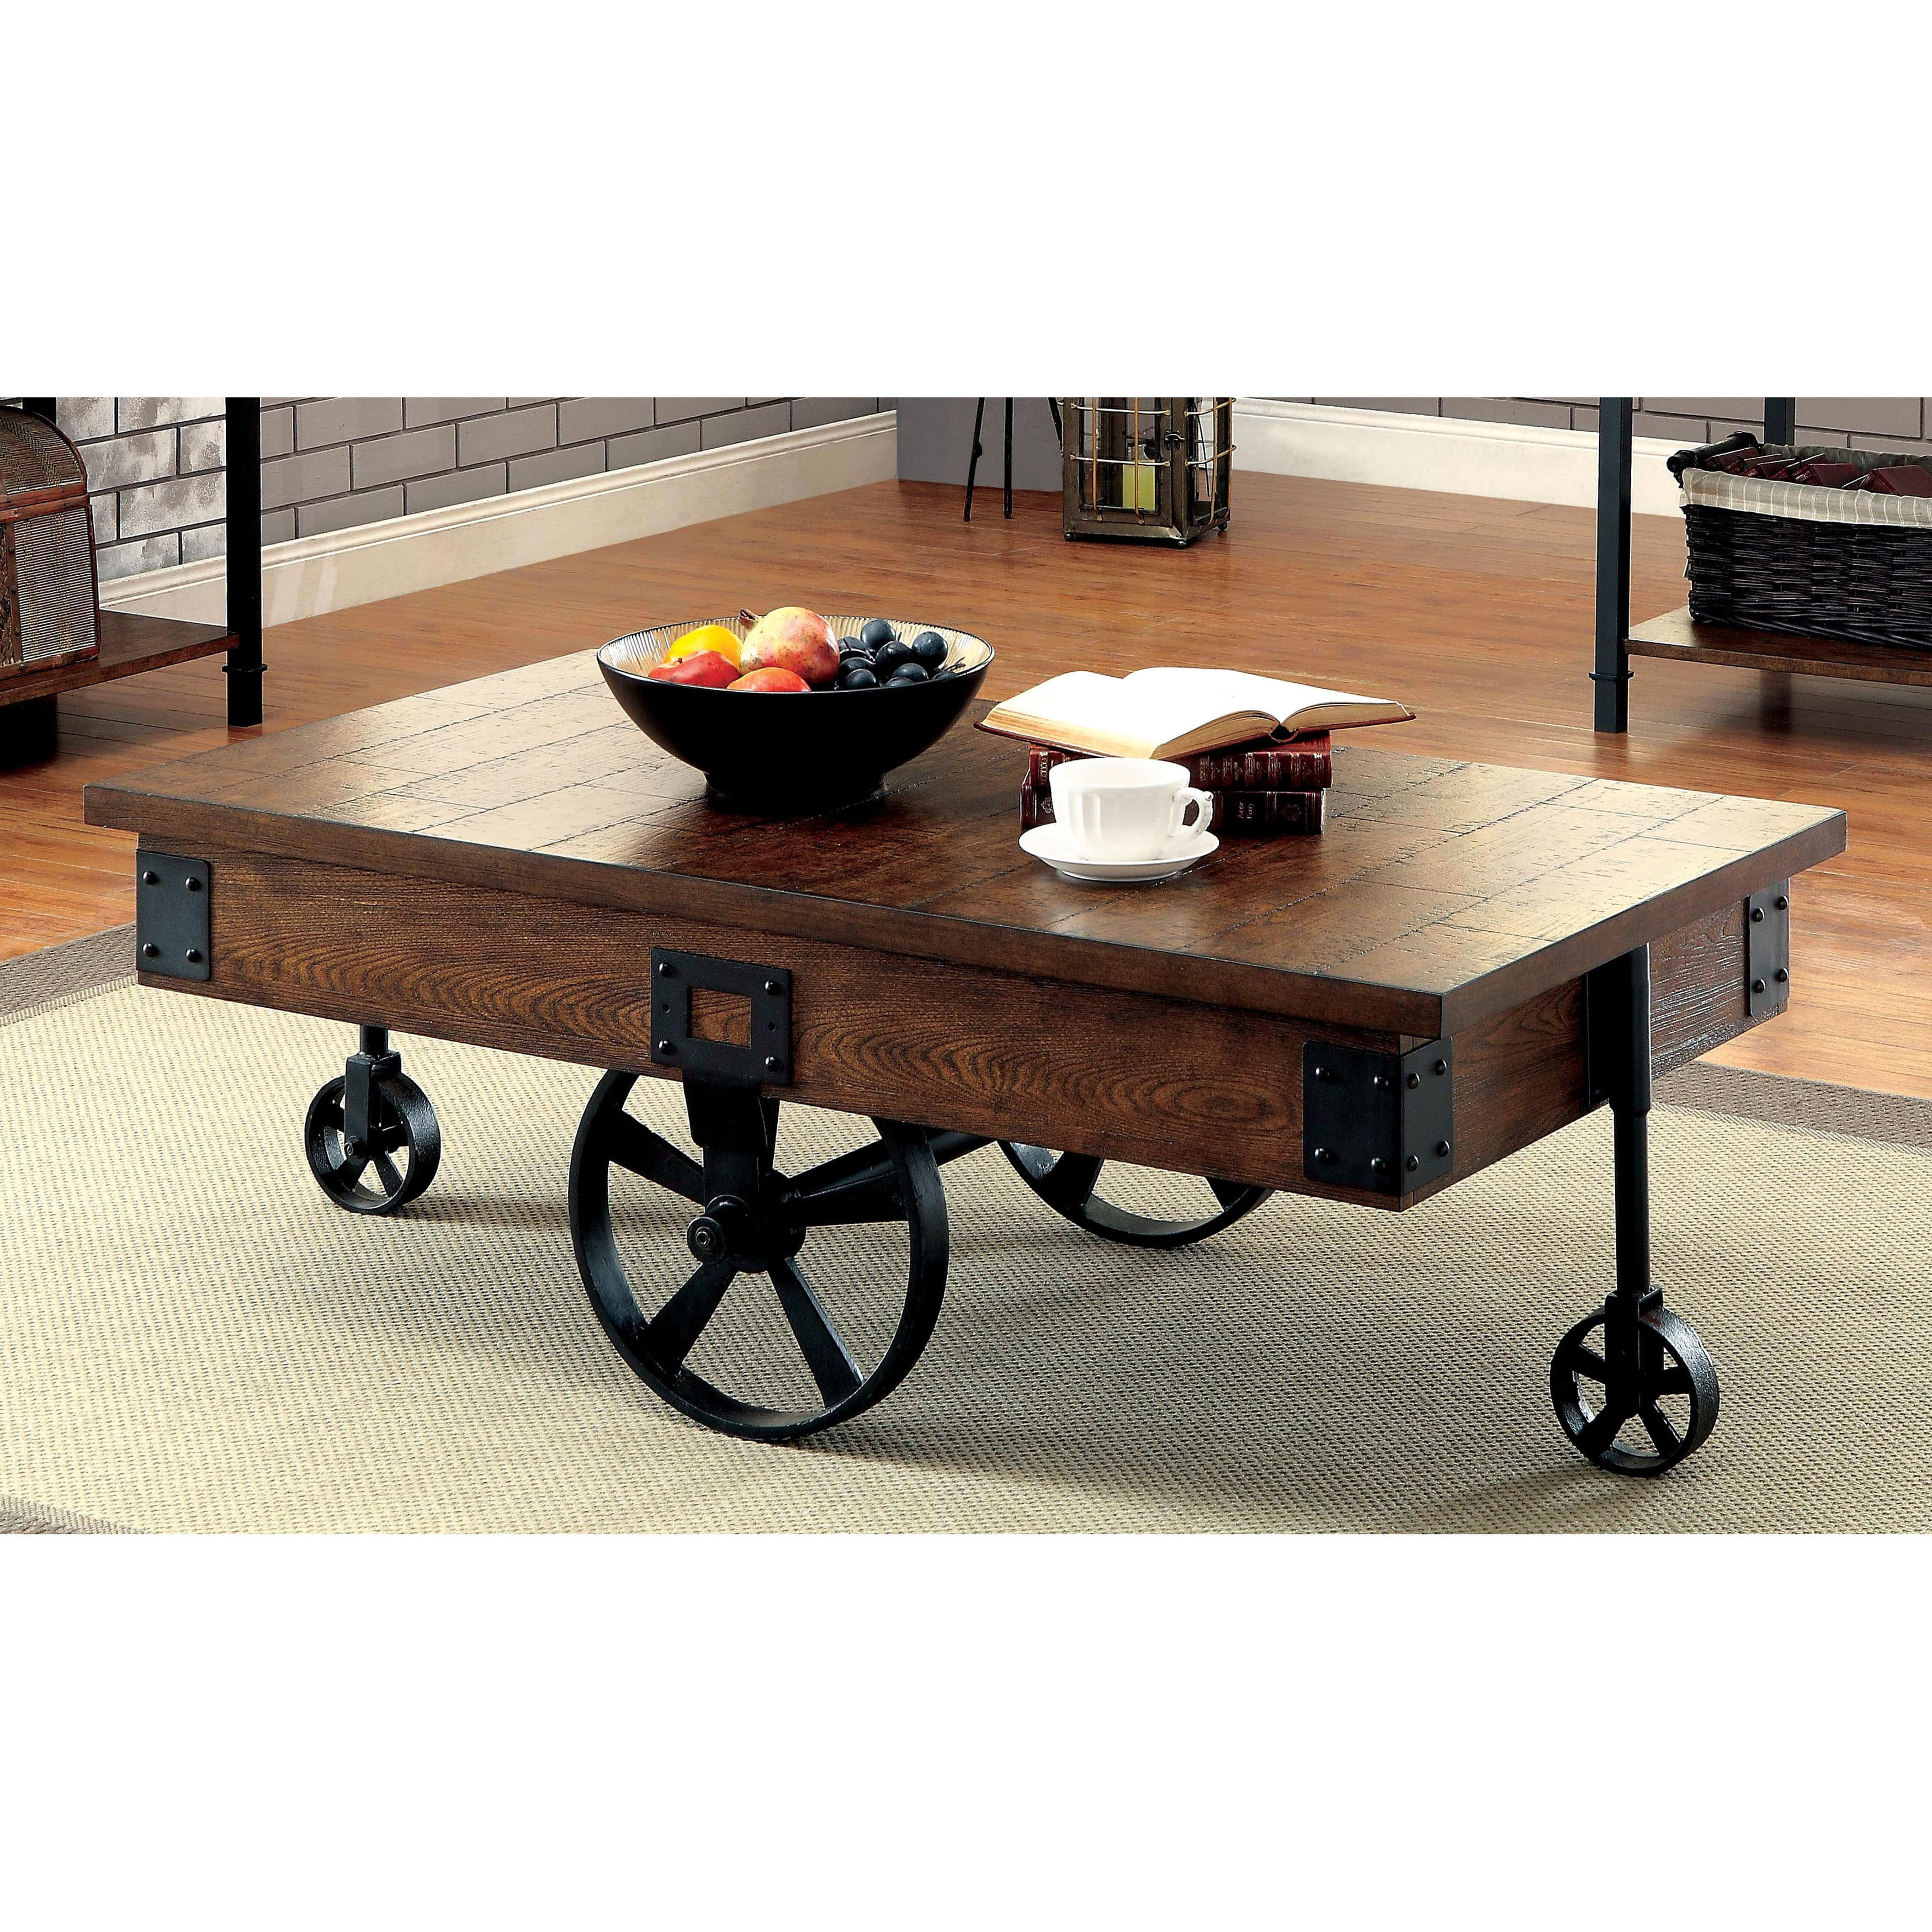 Charming Furniture Of America Carpenter Rustic Weathered Oak Caster Wheel Coffee  Table